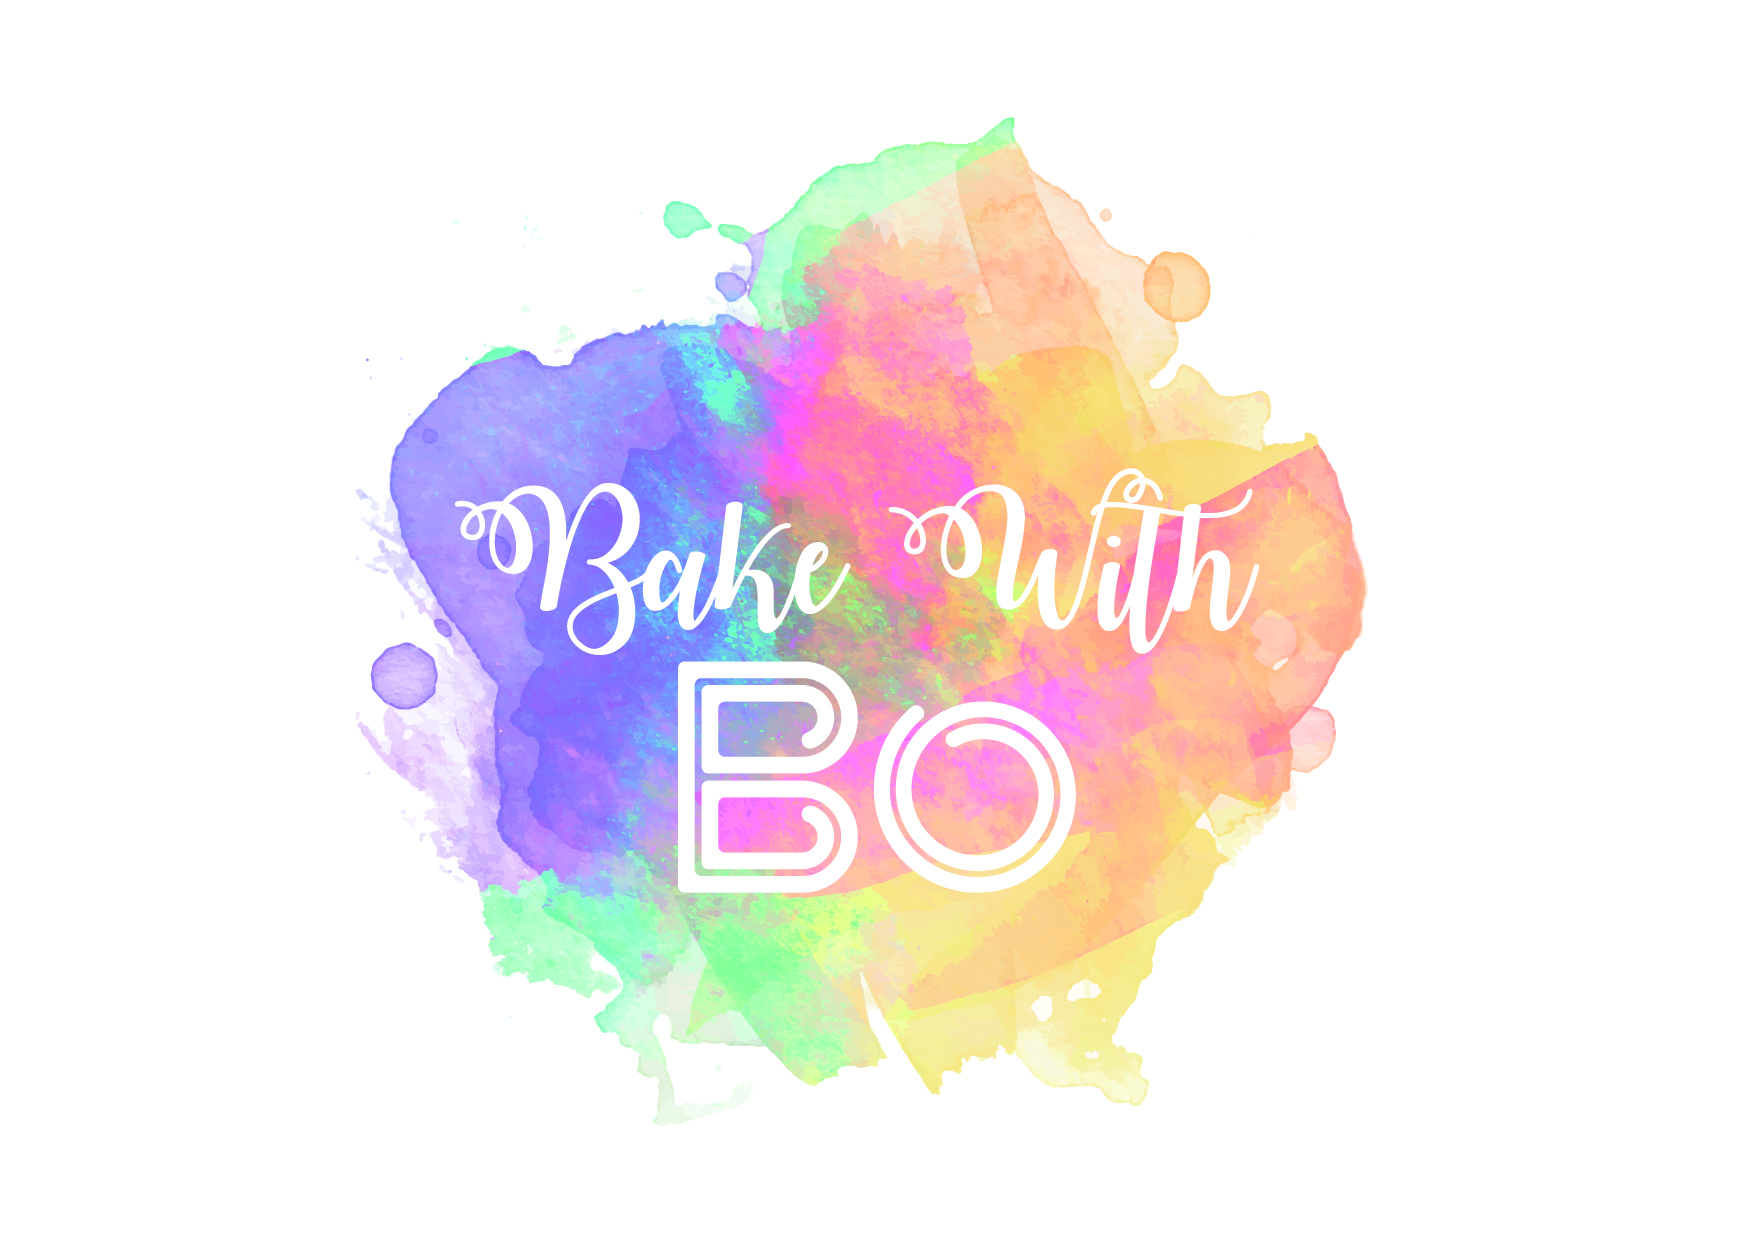 Head on over to my baking site,  Bake With Bo , for all the latest on classes, recipes, fun stories, and more!!